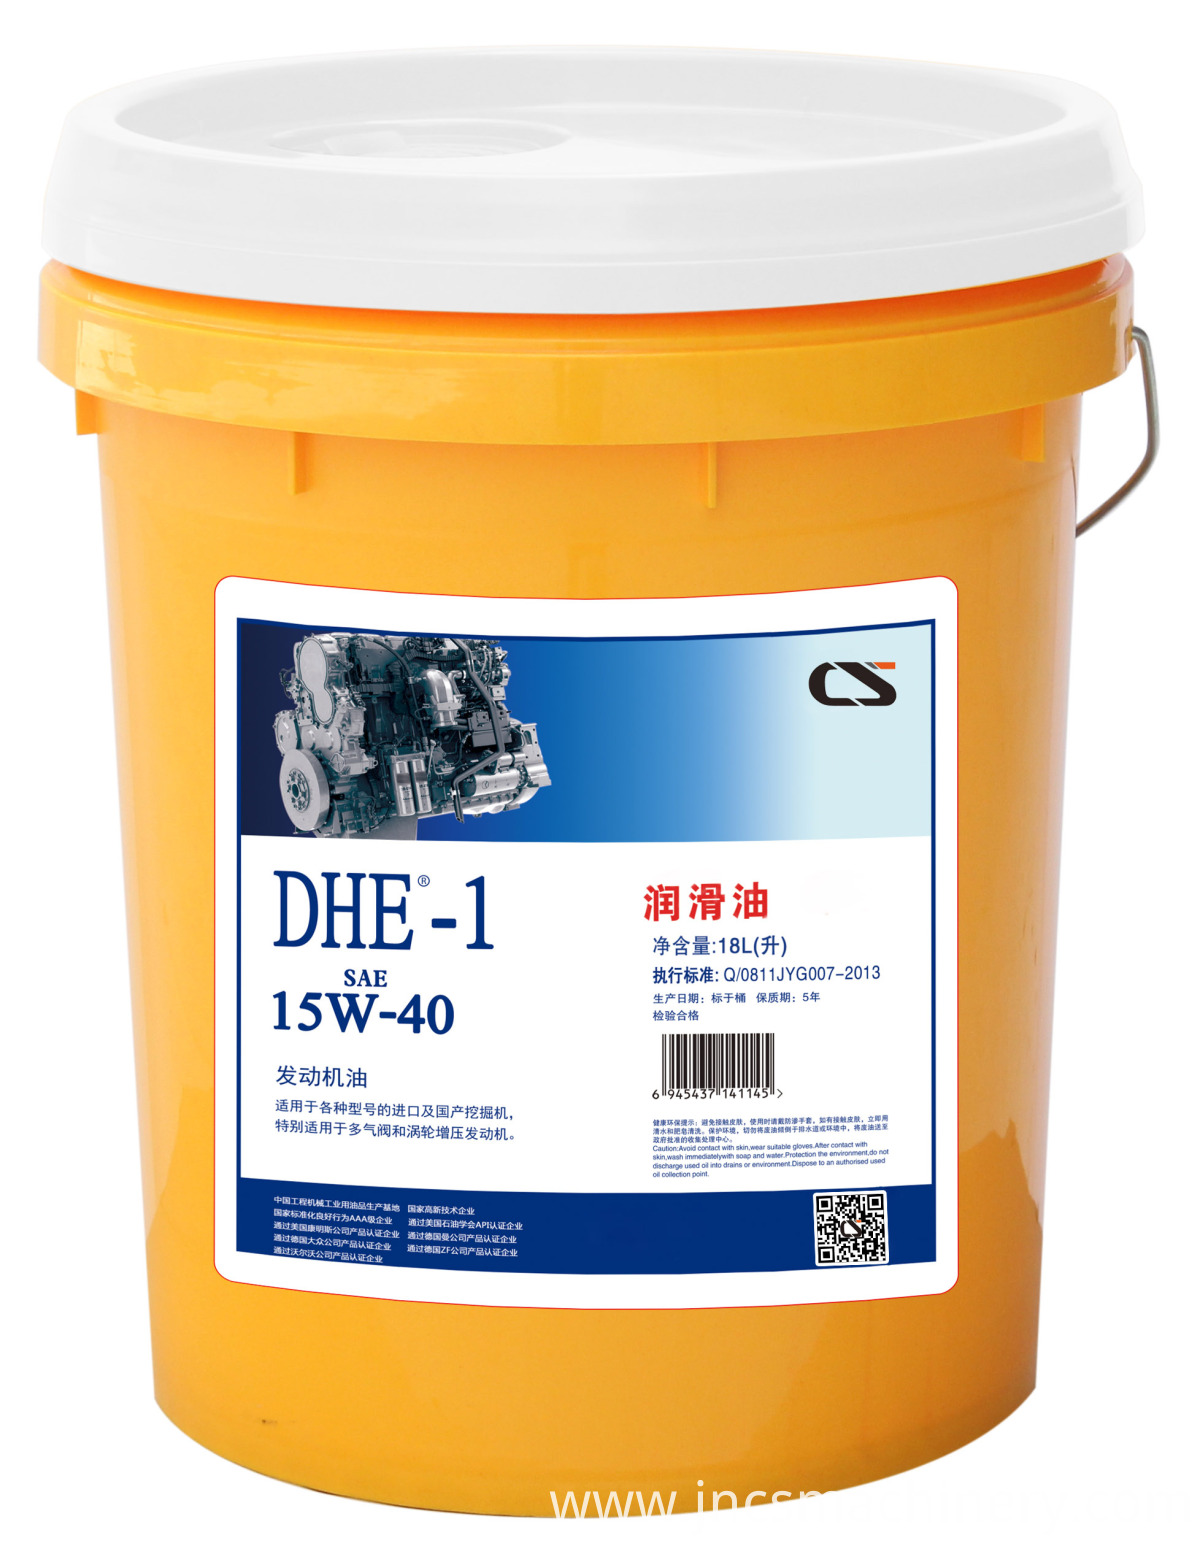 Engine Oil DHE-1 SAE 15W-40